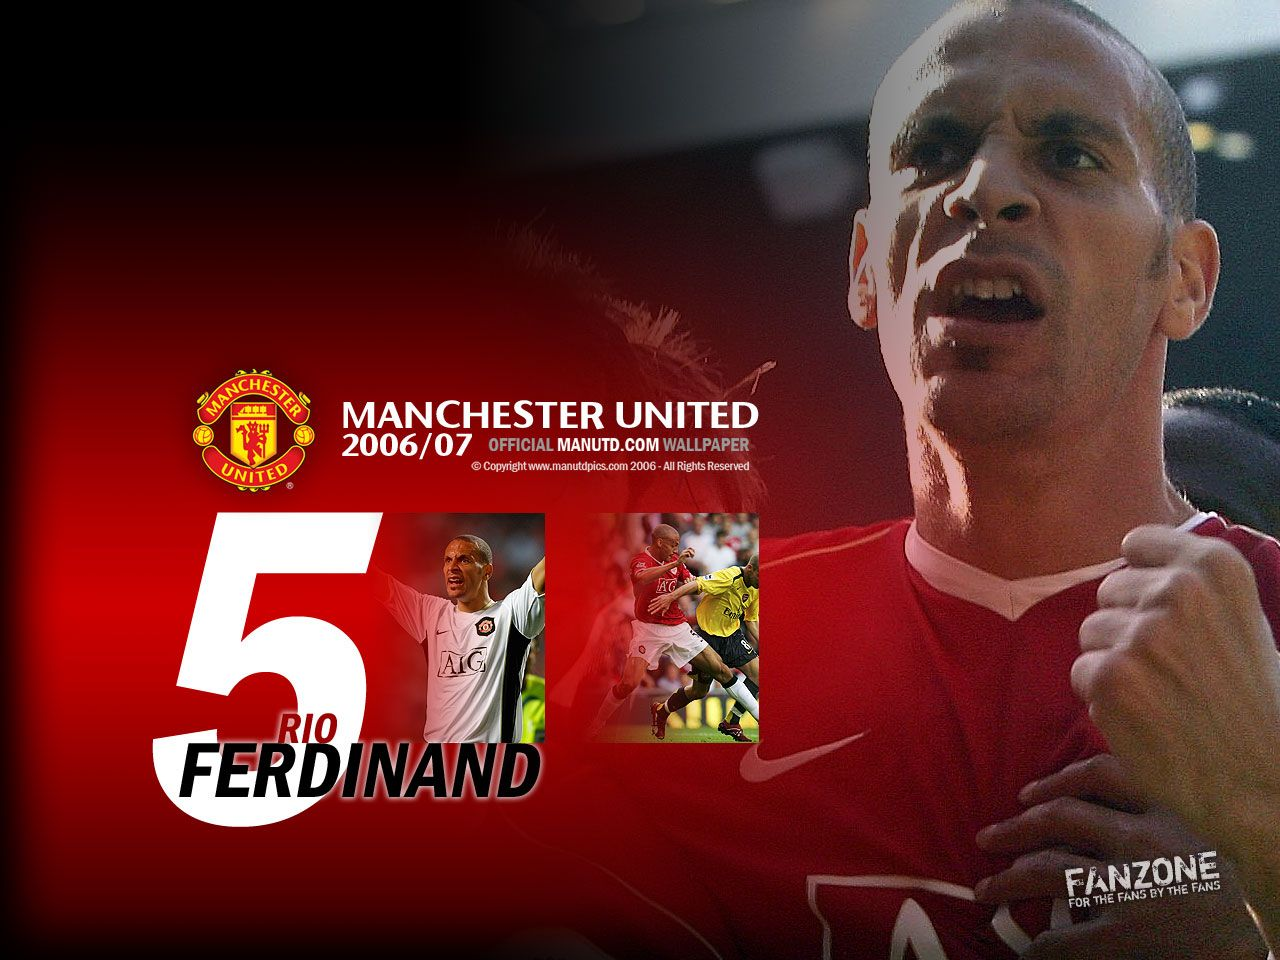 Rio Ferdinand Wallpapers